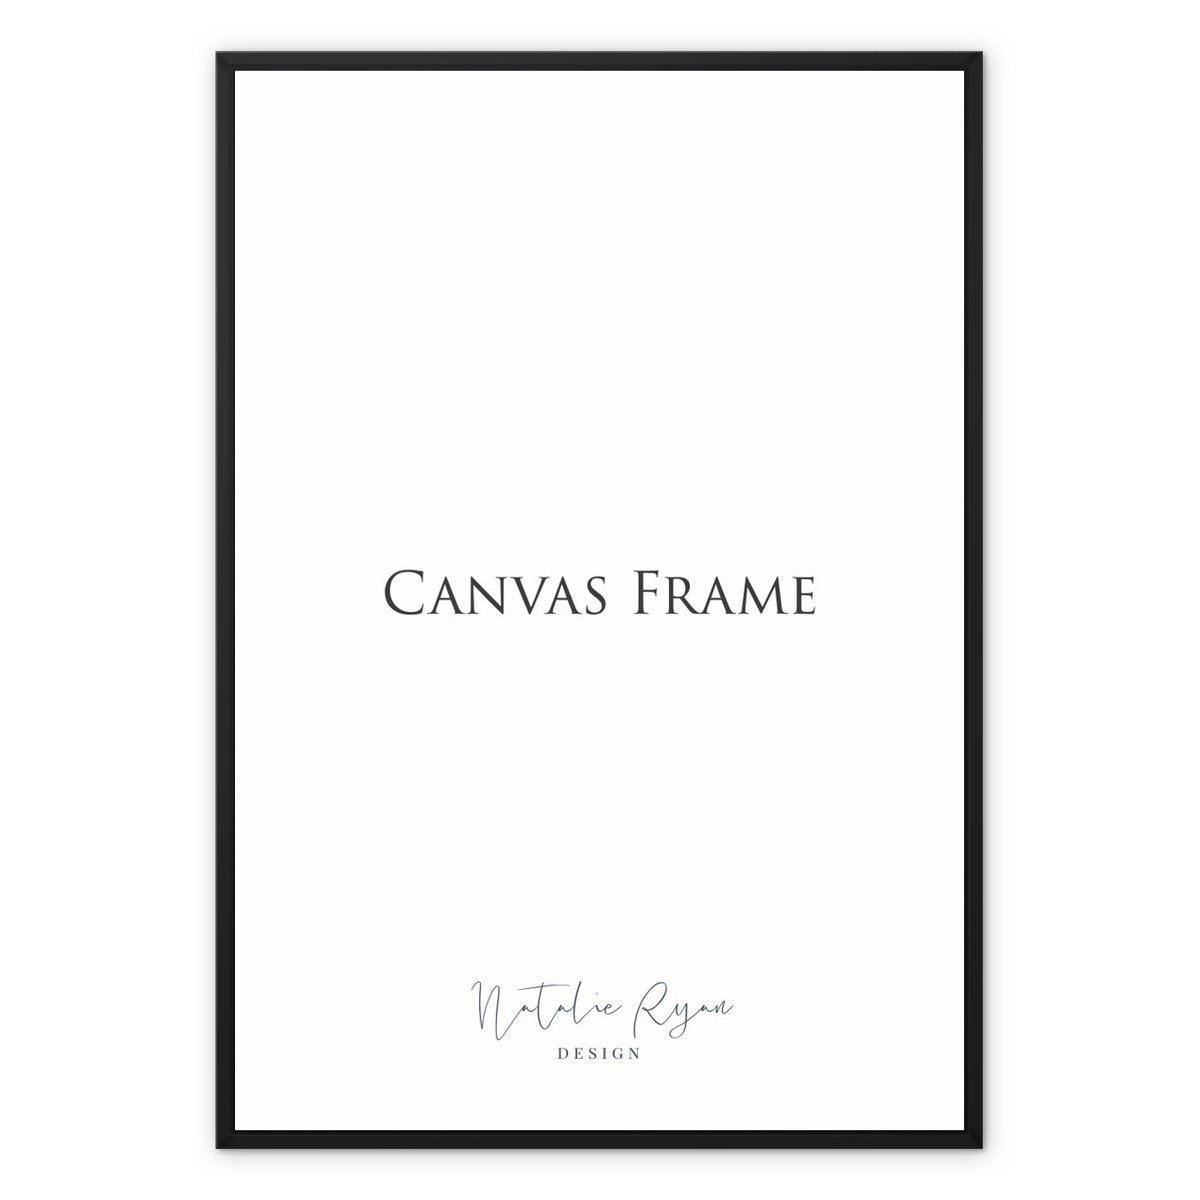 Framed Canvas Print, 8x10 in / 20x25 cm, Black Frame